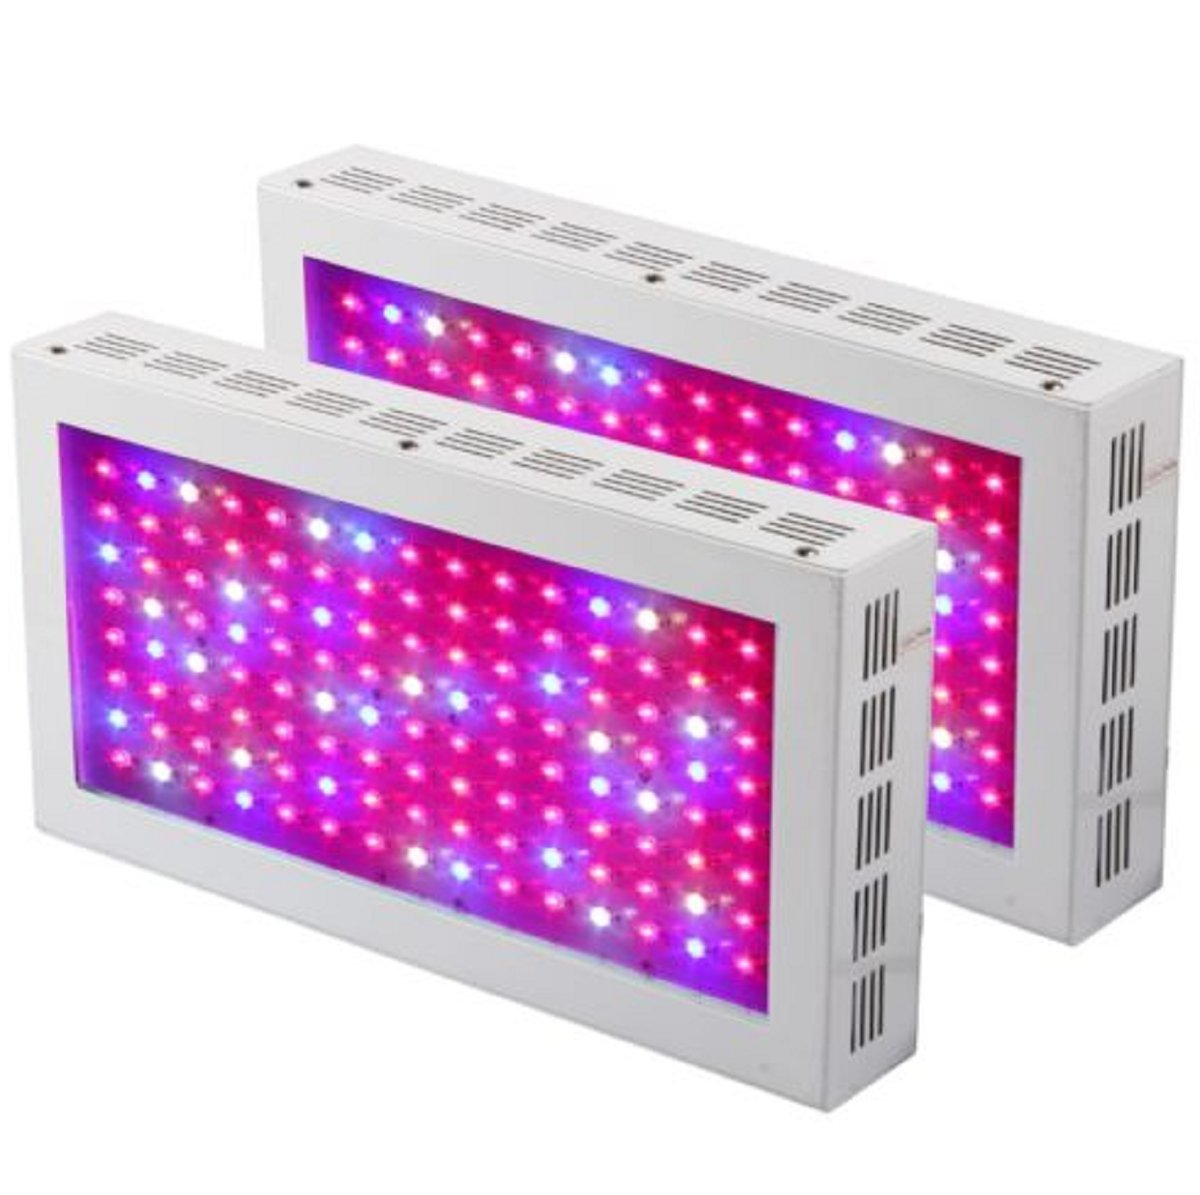 USA Premium Store WELLPAR 2PCS 600W LED Grow Light Panel Spectrum Indoor Hydro Veg Flowering Plant